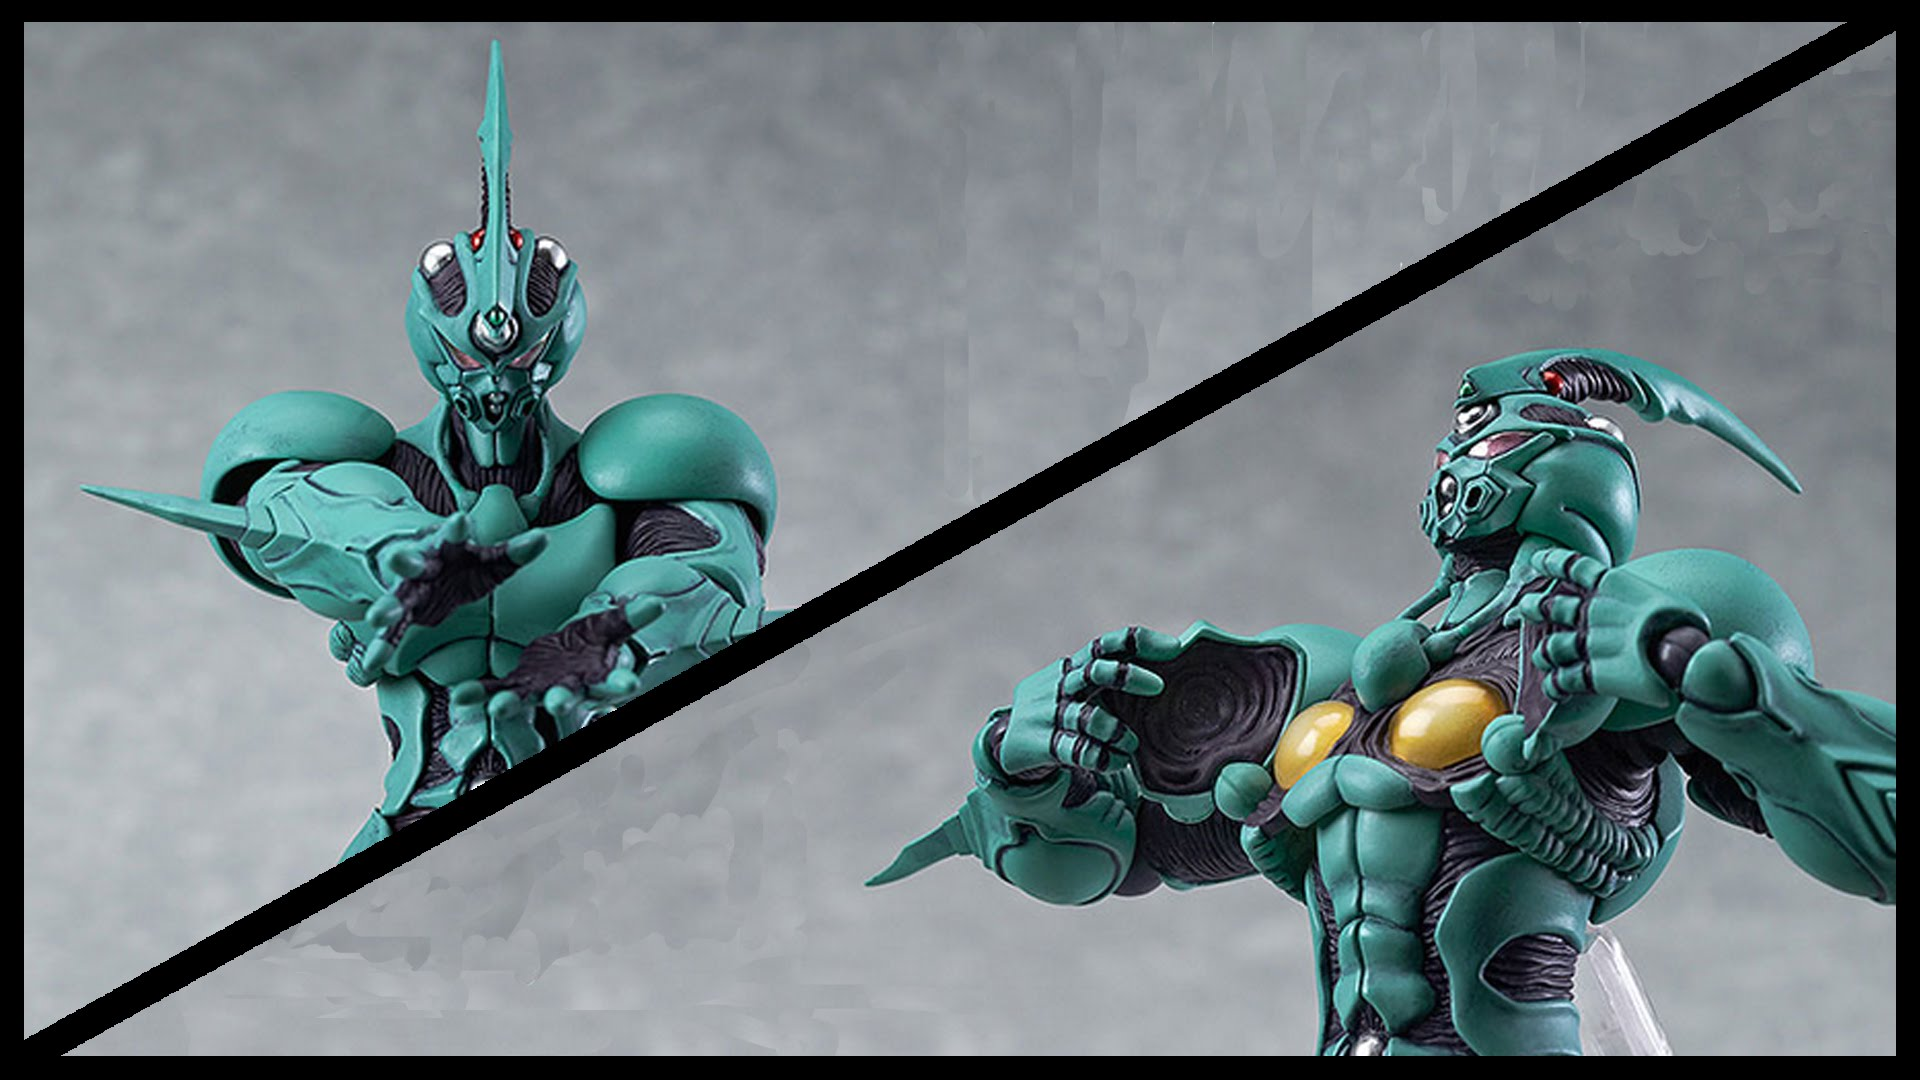 Guyver The Bioboosted Armor Pics, Anime Collection